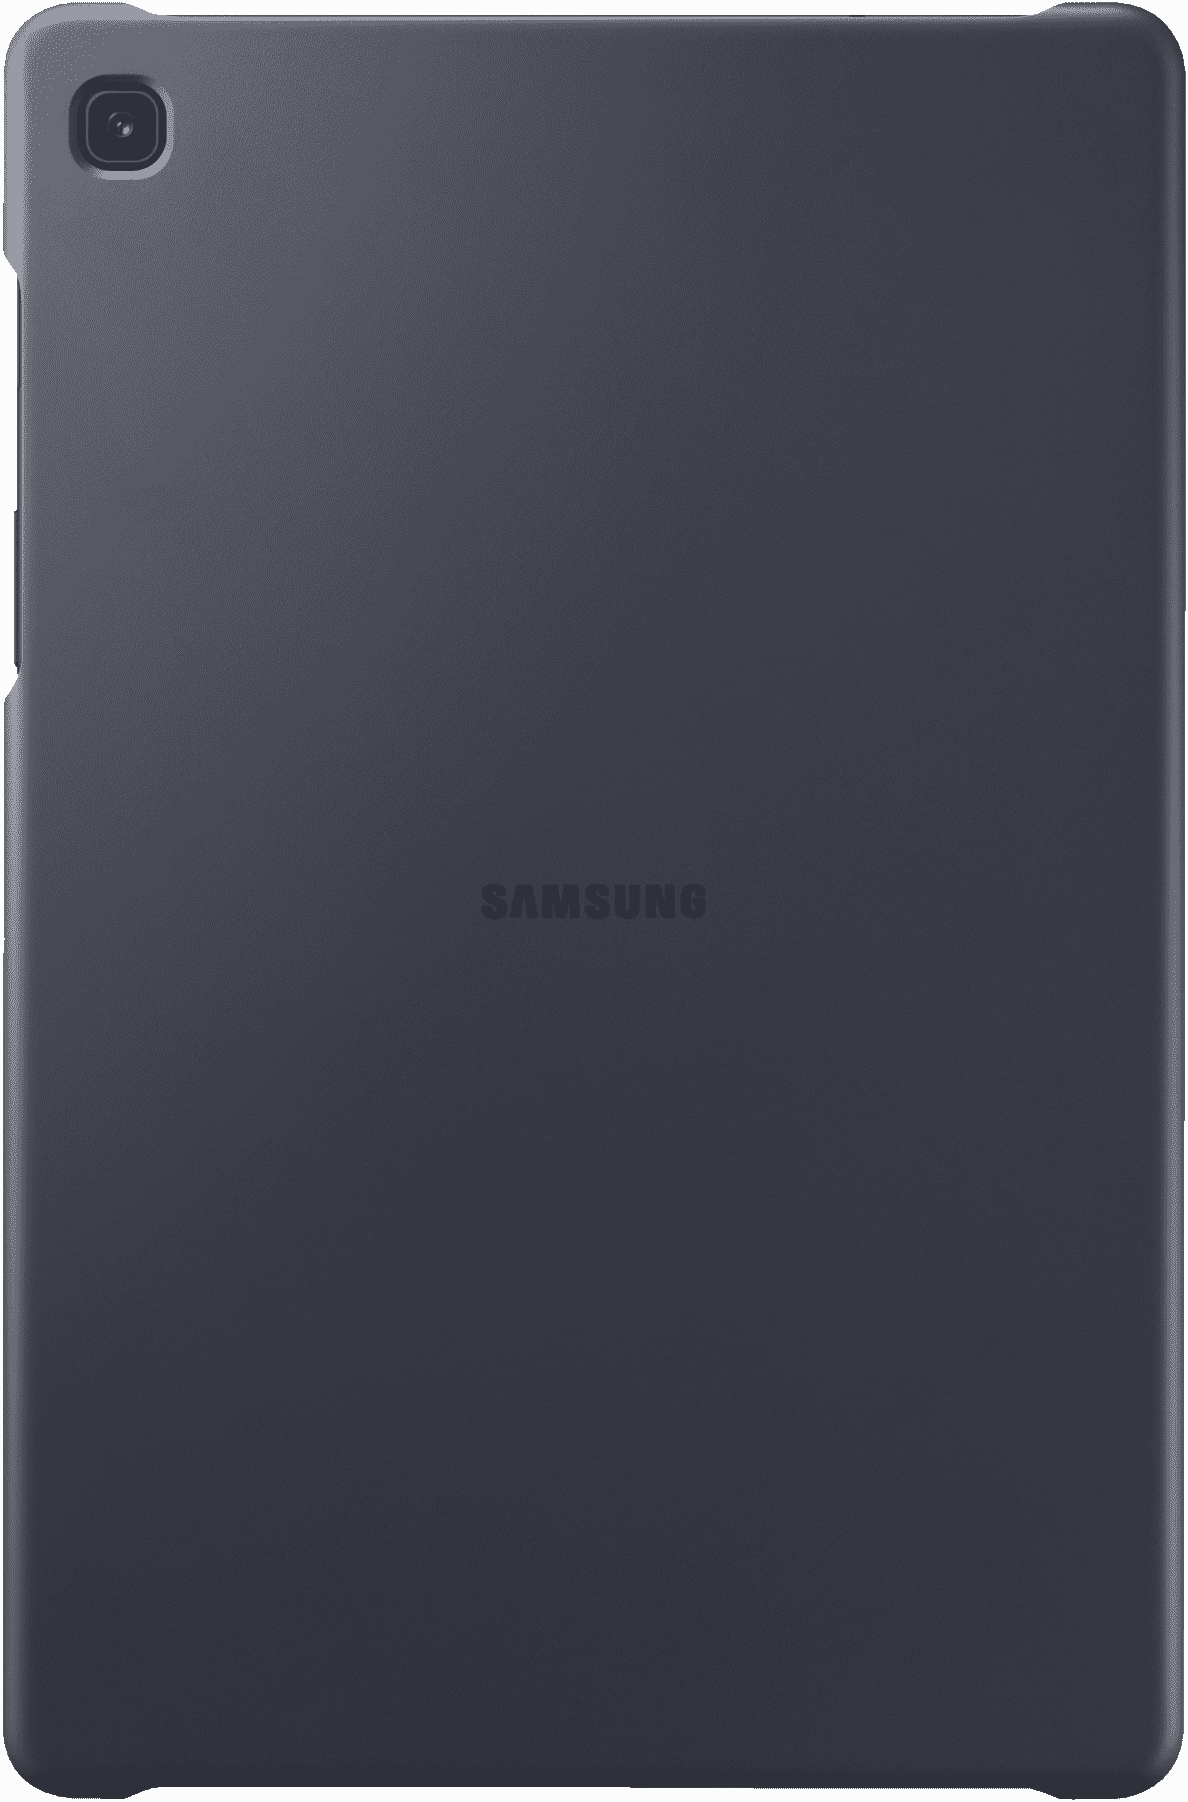 SAMSUNG EF-IT720 Tab S5e in Schwarz